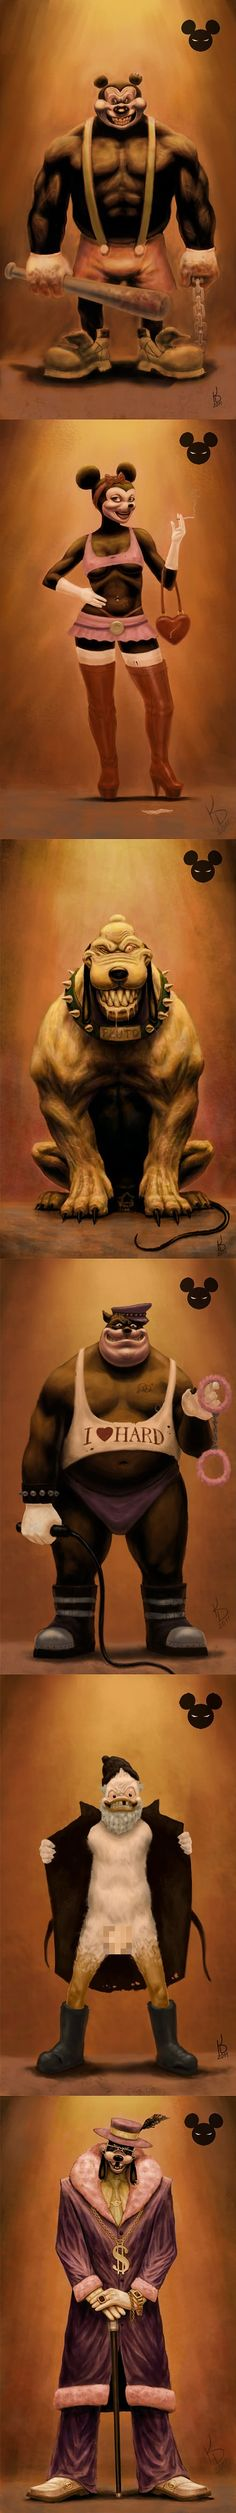 Evil original Disney characters. But where is Daisy?